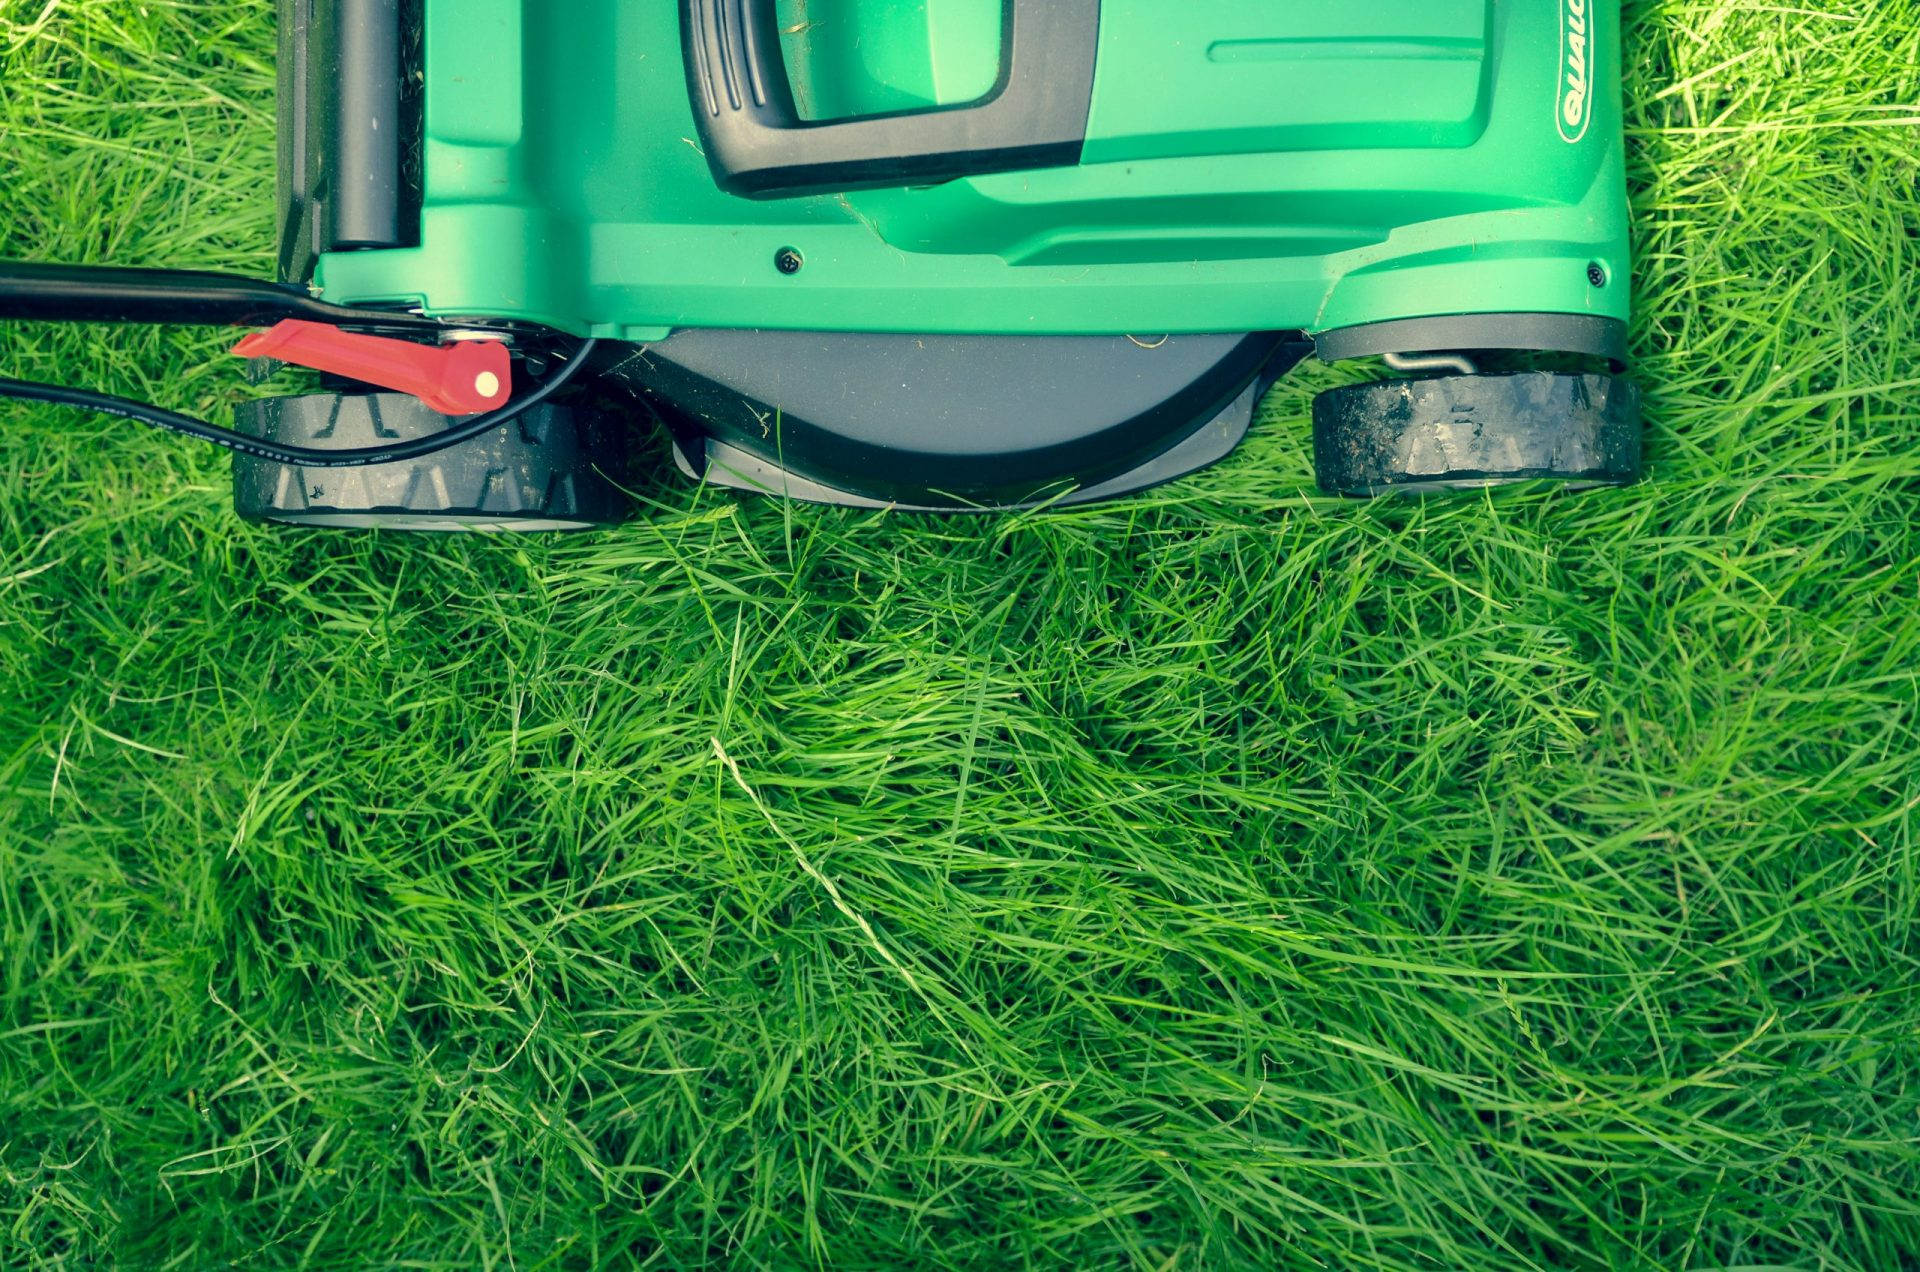 How to Cut Lawn Edges Quickly and Accurately